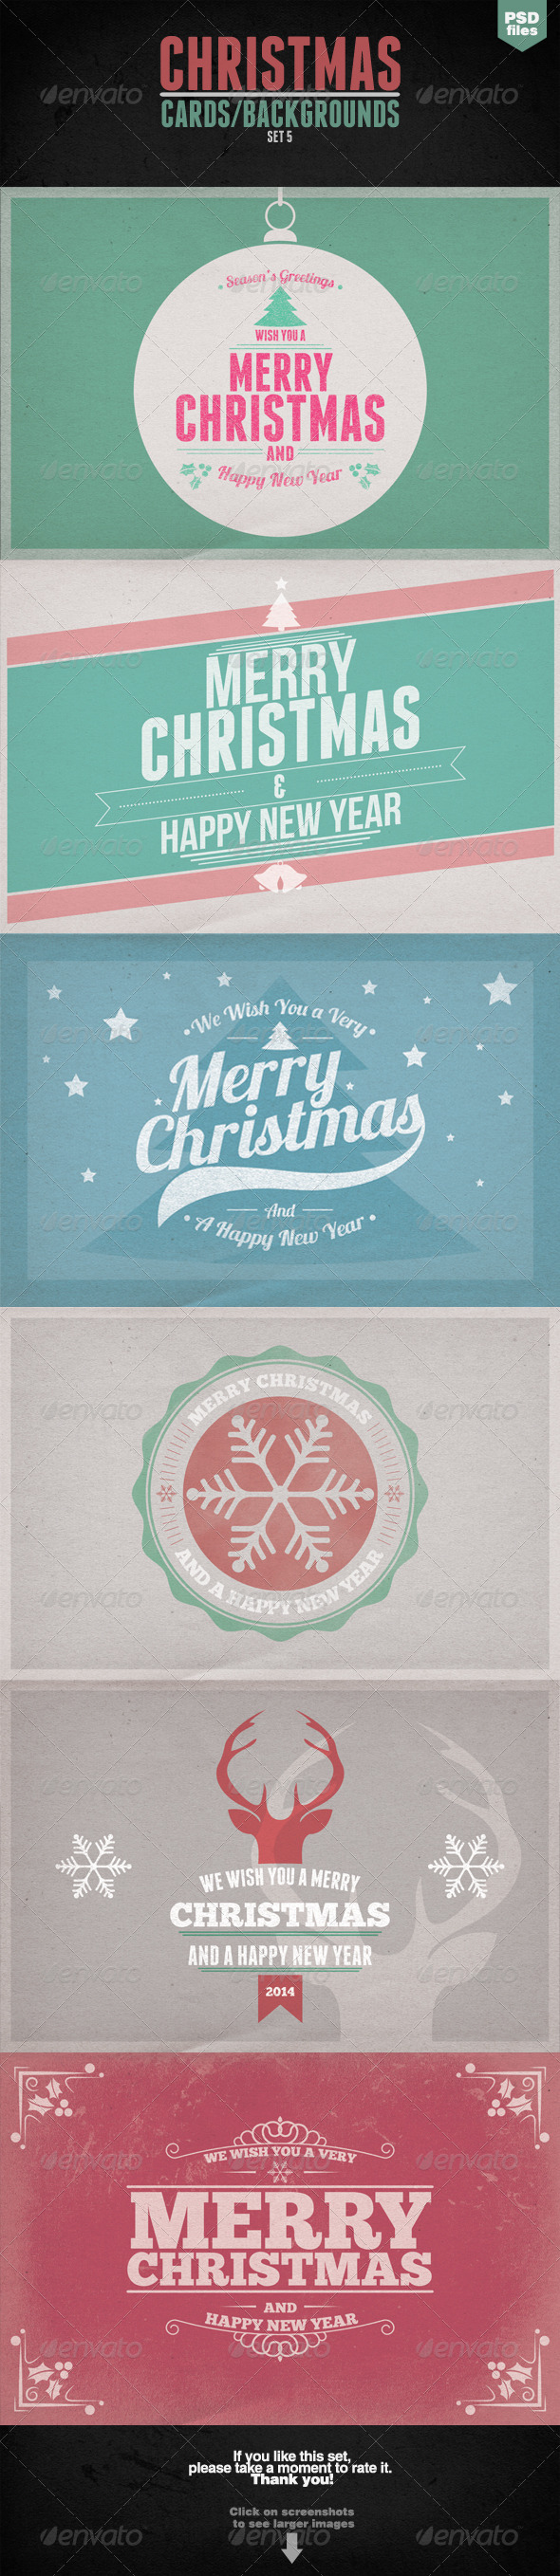 GraphicRiver Vintage Christmas Cards Backgrounds Set 5 6319230